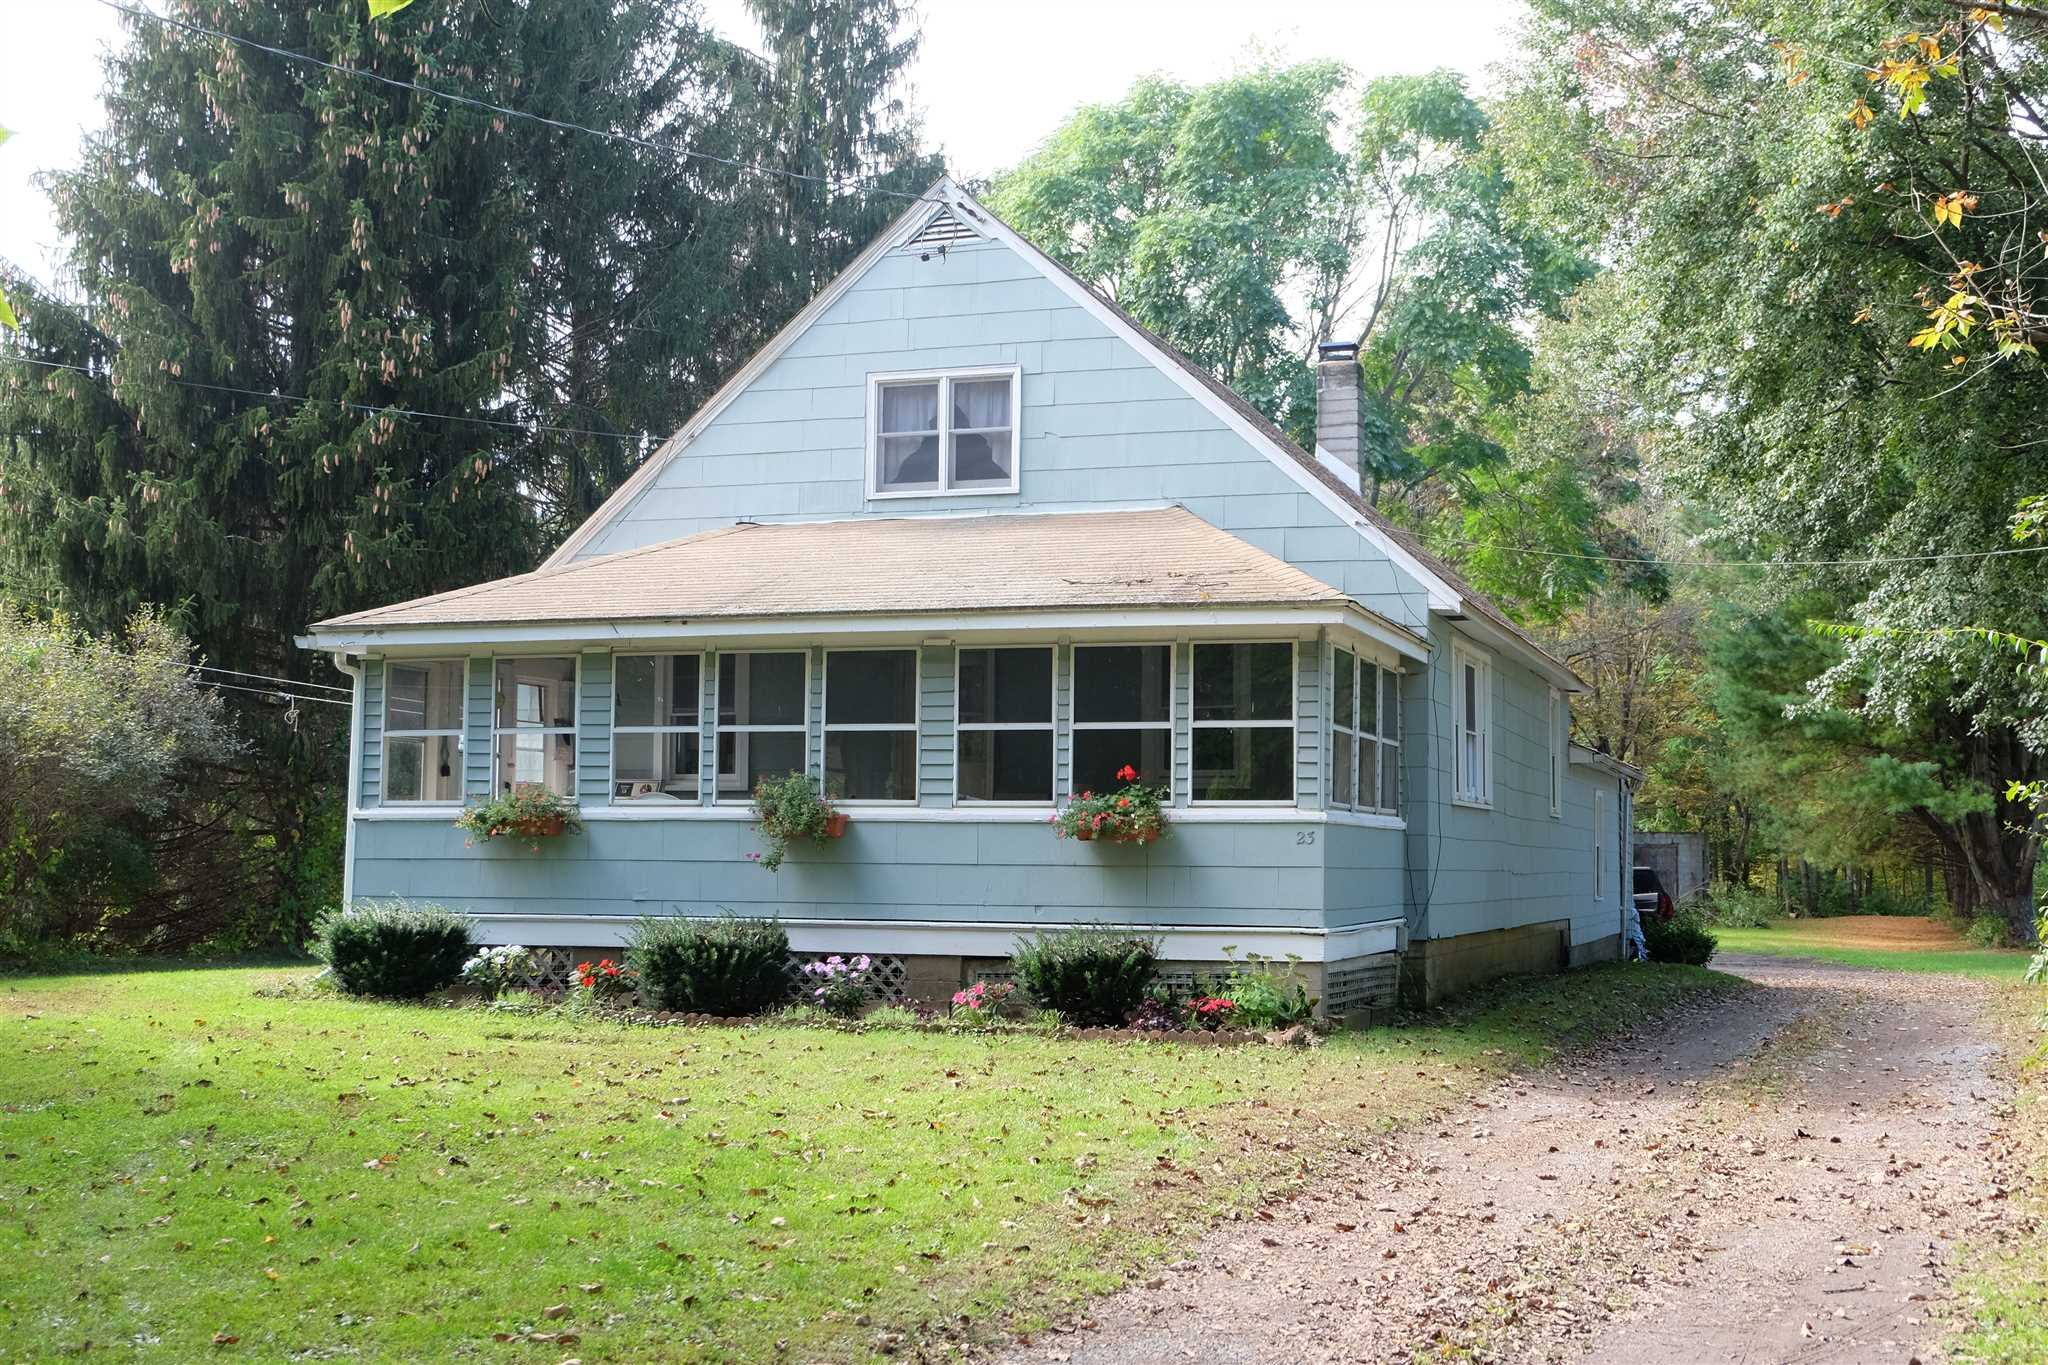 Single Family Home for Sale at 23 CARDINAL Road 23 CARDINAL Road Hyde Park, New York 12538 United States